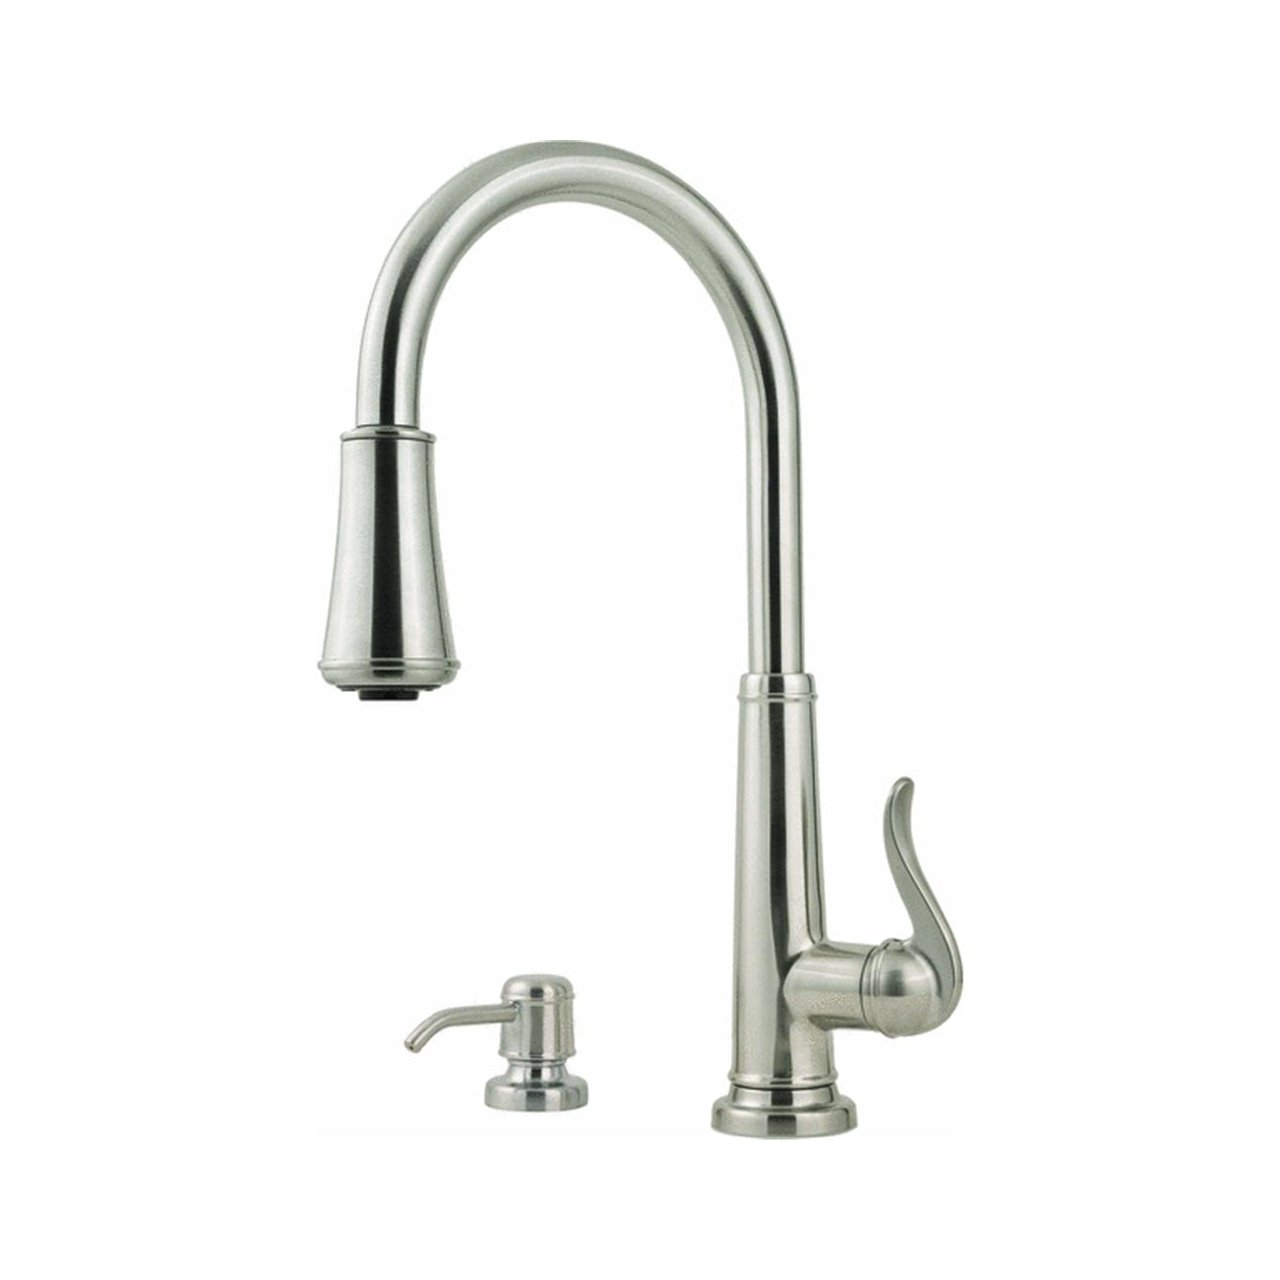 Pfister Ashfield 1, 2, 3, or 4-Hole Pull-down Stainless Steel Kitchen  Faucet F529MYPS - Touch On Kitchen Sink Faucets - Amazon.com